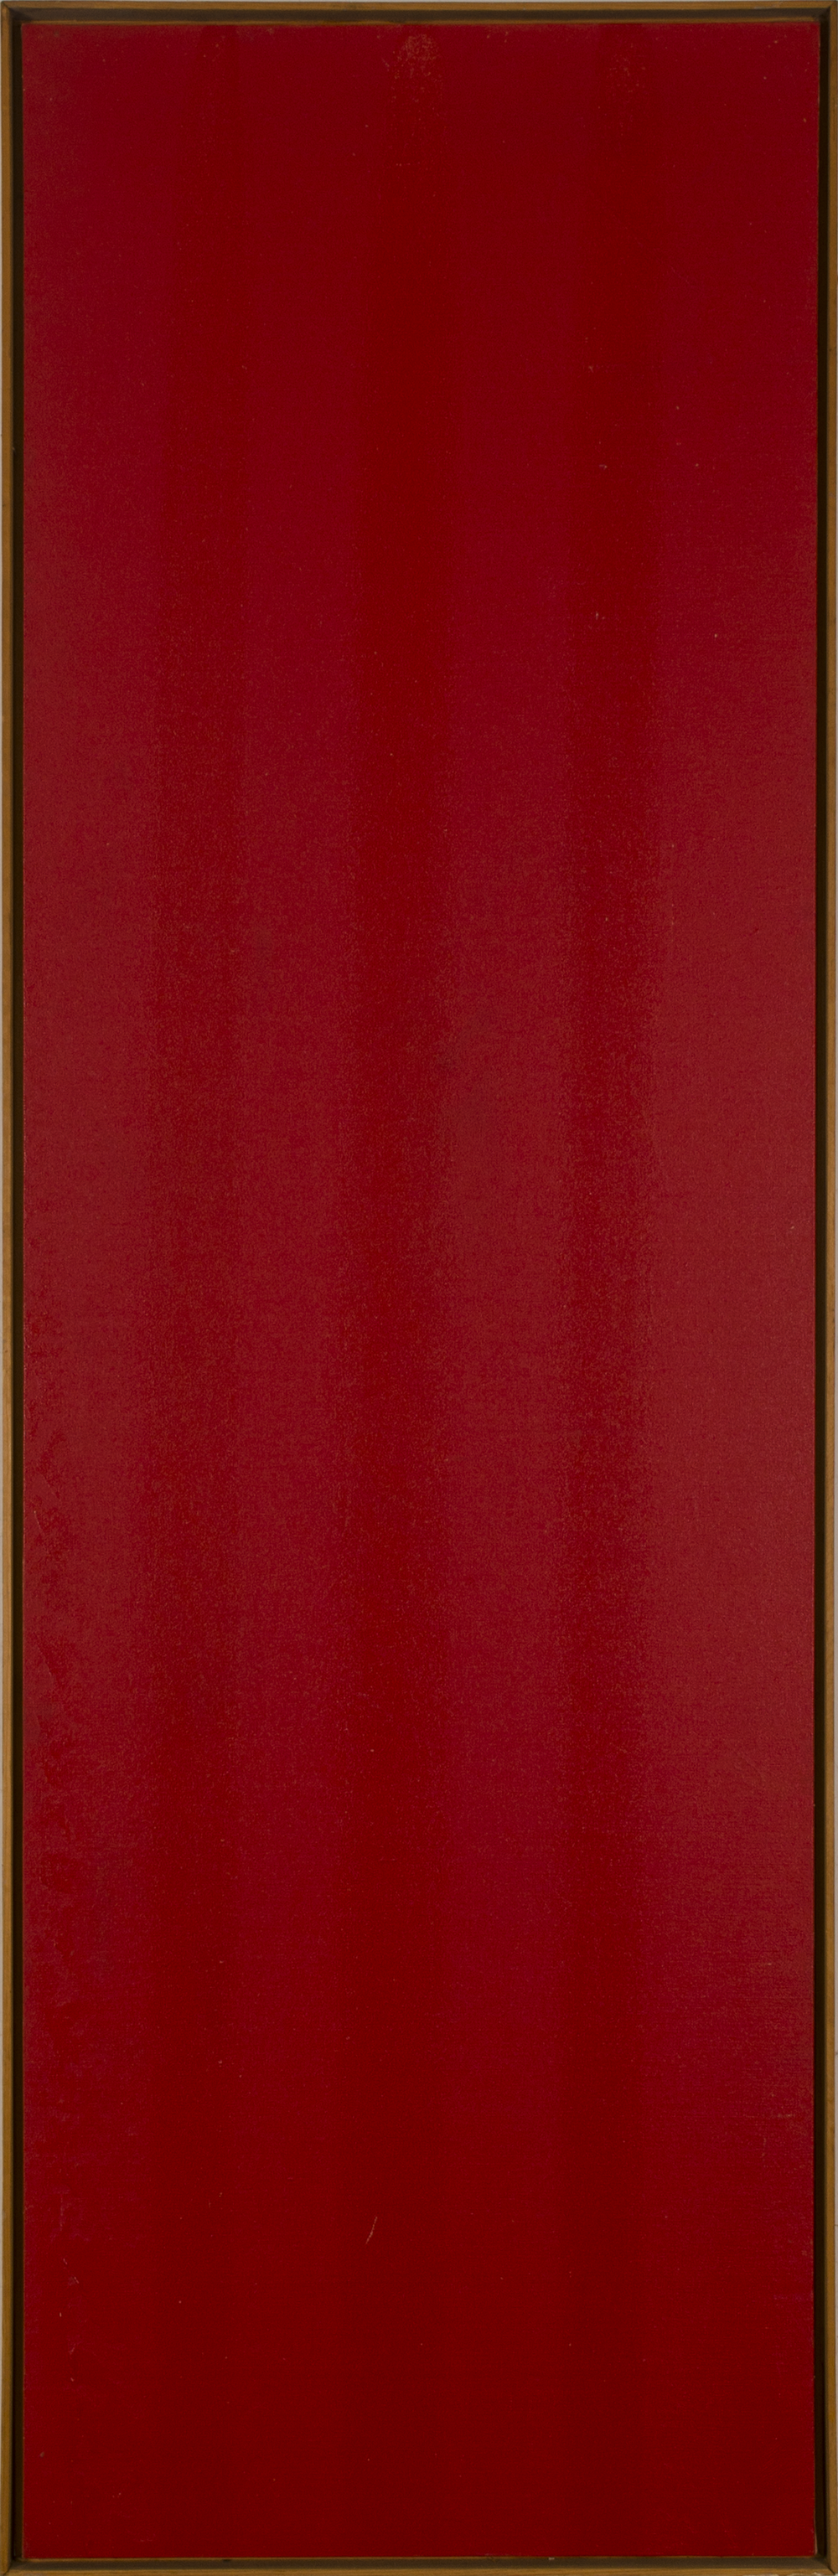 POUR- RED RED 1974 ©acrylic paint on primed canvas